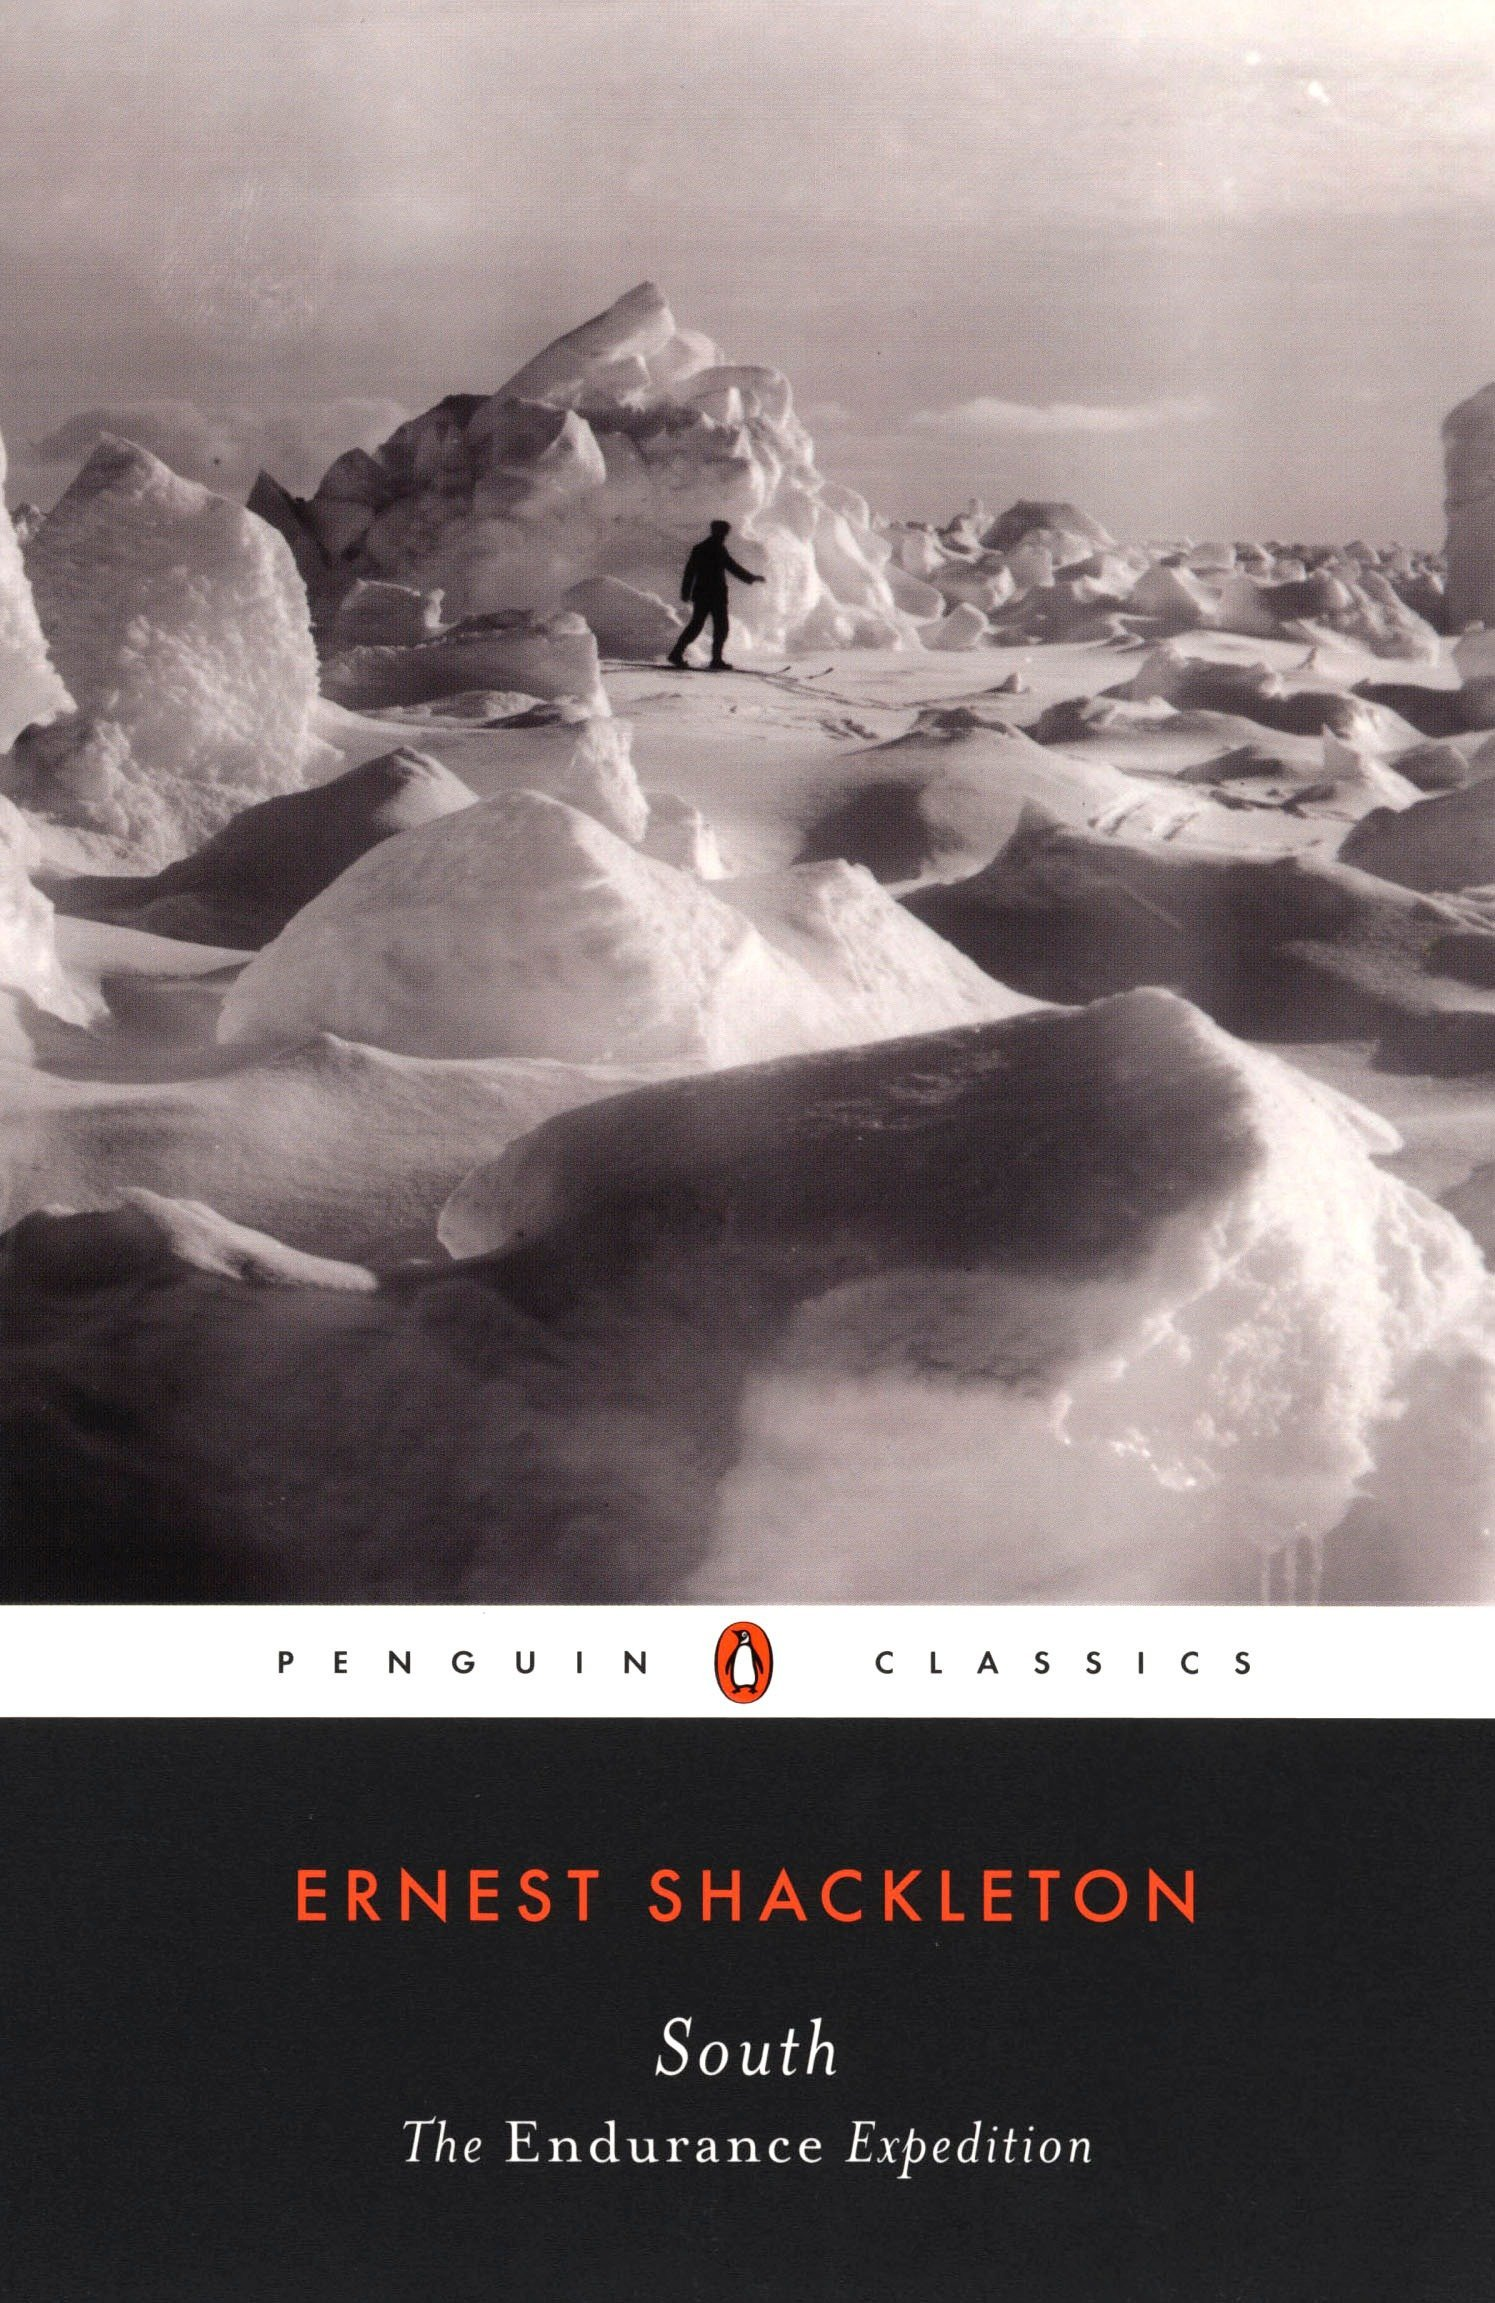 Ernest Shackleton, South (Diario dell'esploratore) - Libri di viaggio sull'Antartide